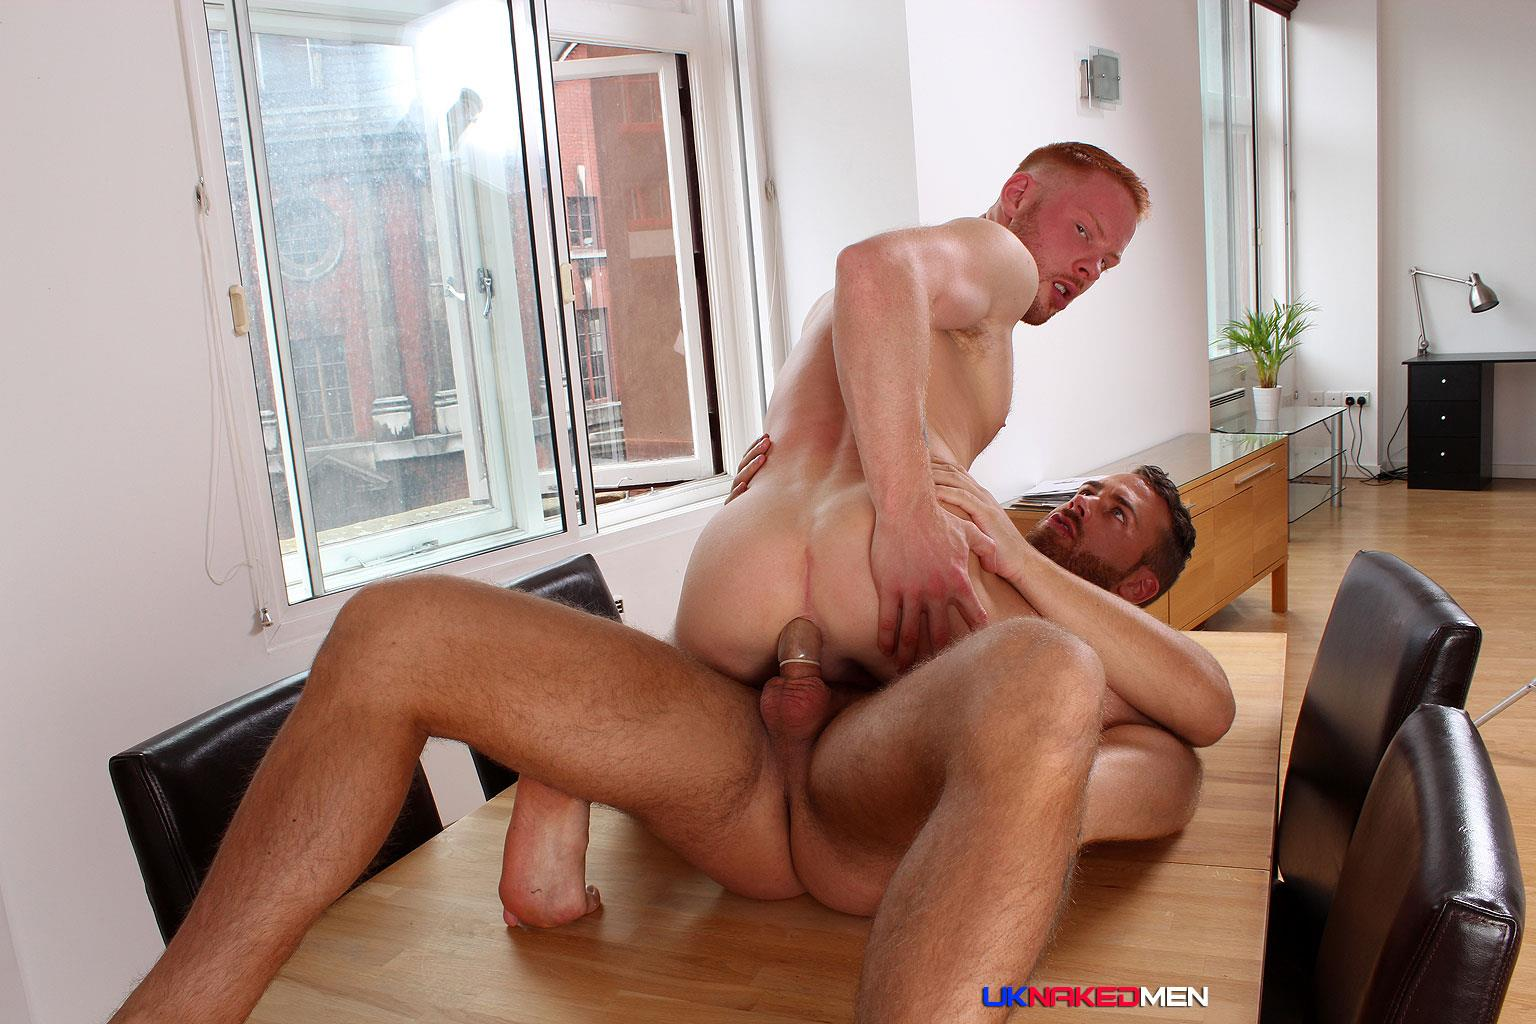 UK-Naked-Men-Logan-Moore-and-Andro-Maas-Redhead-Gets-Fucked-By-Big-Uncut-Cock-Amateur-Gay-Porn-16 Redhead Andro Maas Takes A Big Thick Uncut Cock Up The Ass